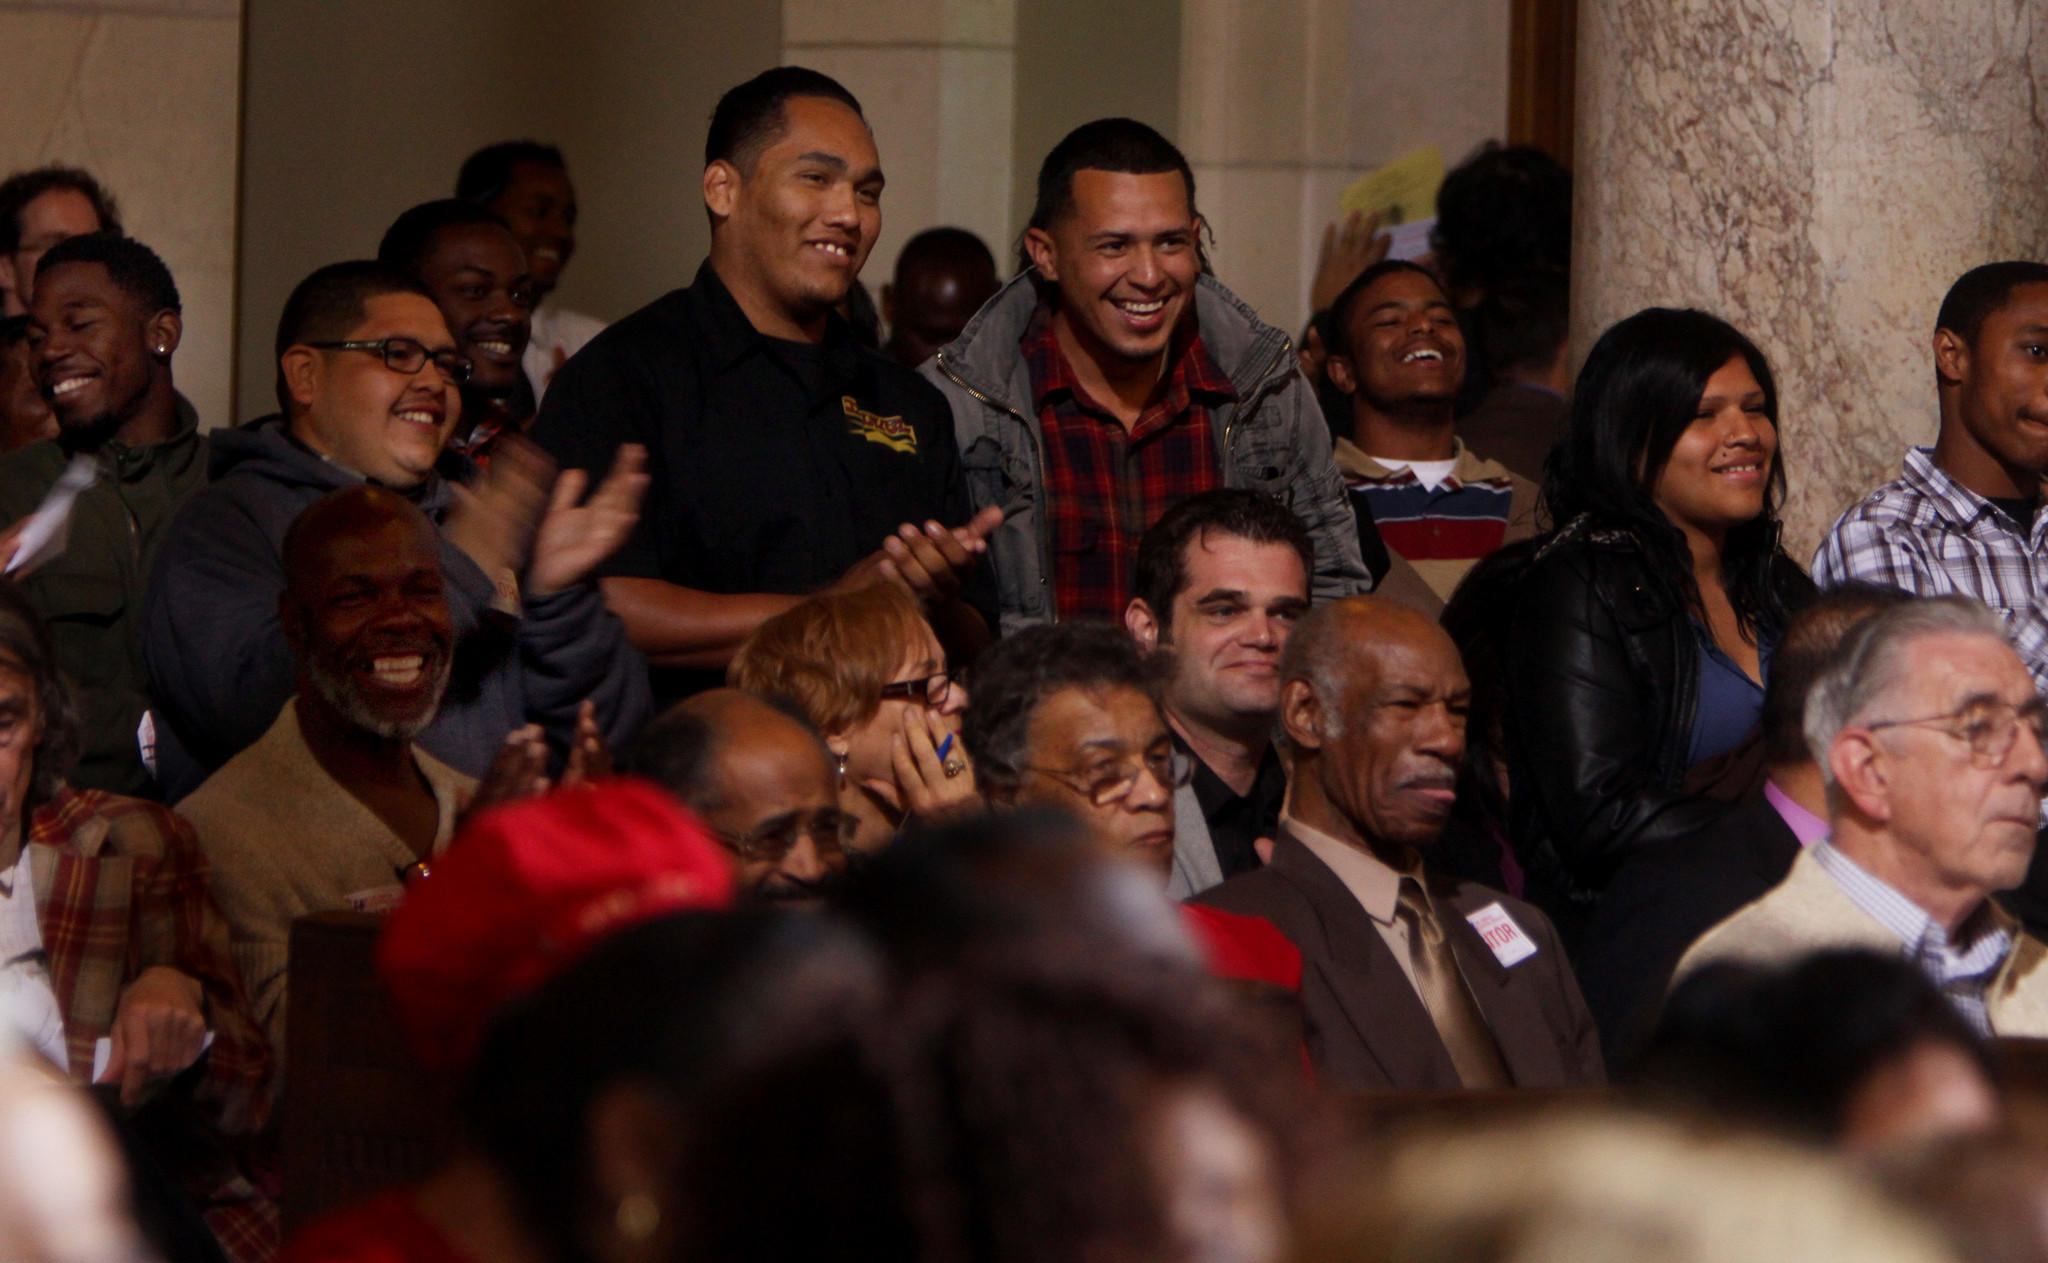 In this March 2012 photo, people listen to a Los Angeles City Council meeting. Like many government bodies across the country, the L.A. council has often wrestled with how to regulate public comments and keep meetings orderly.